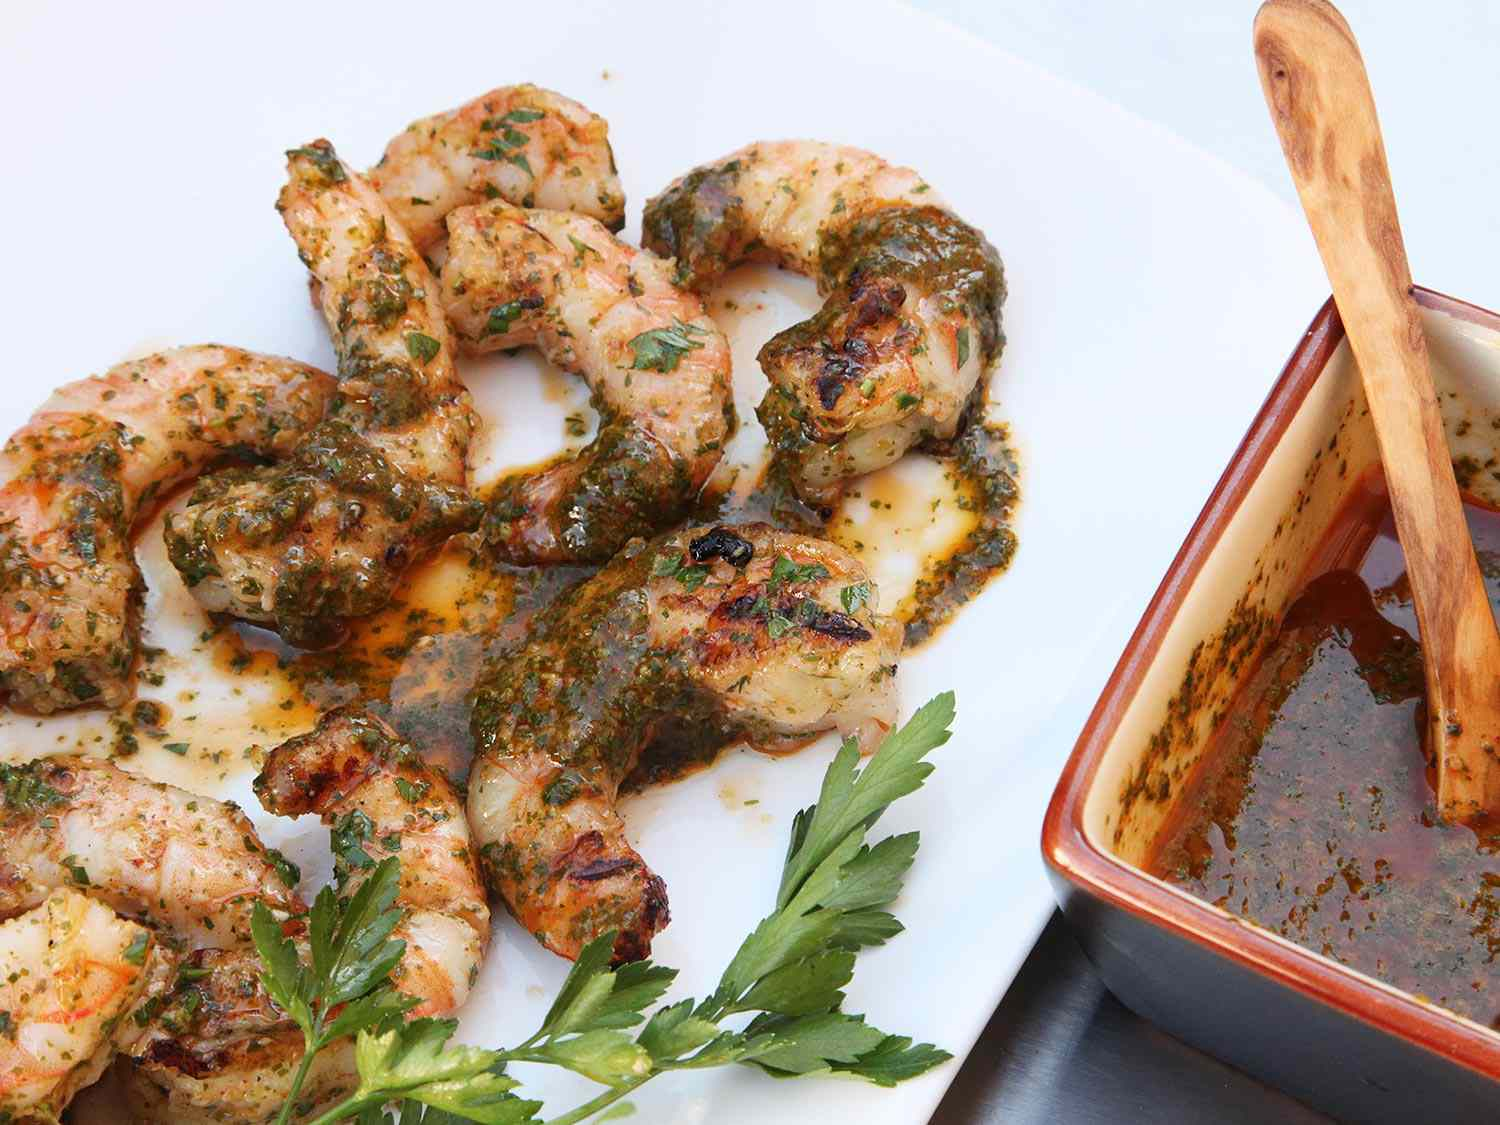 Overhead view of grilled shrimp with chermoula